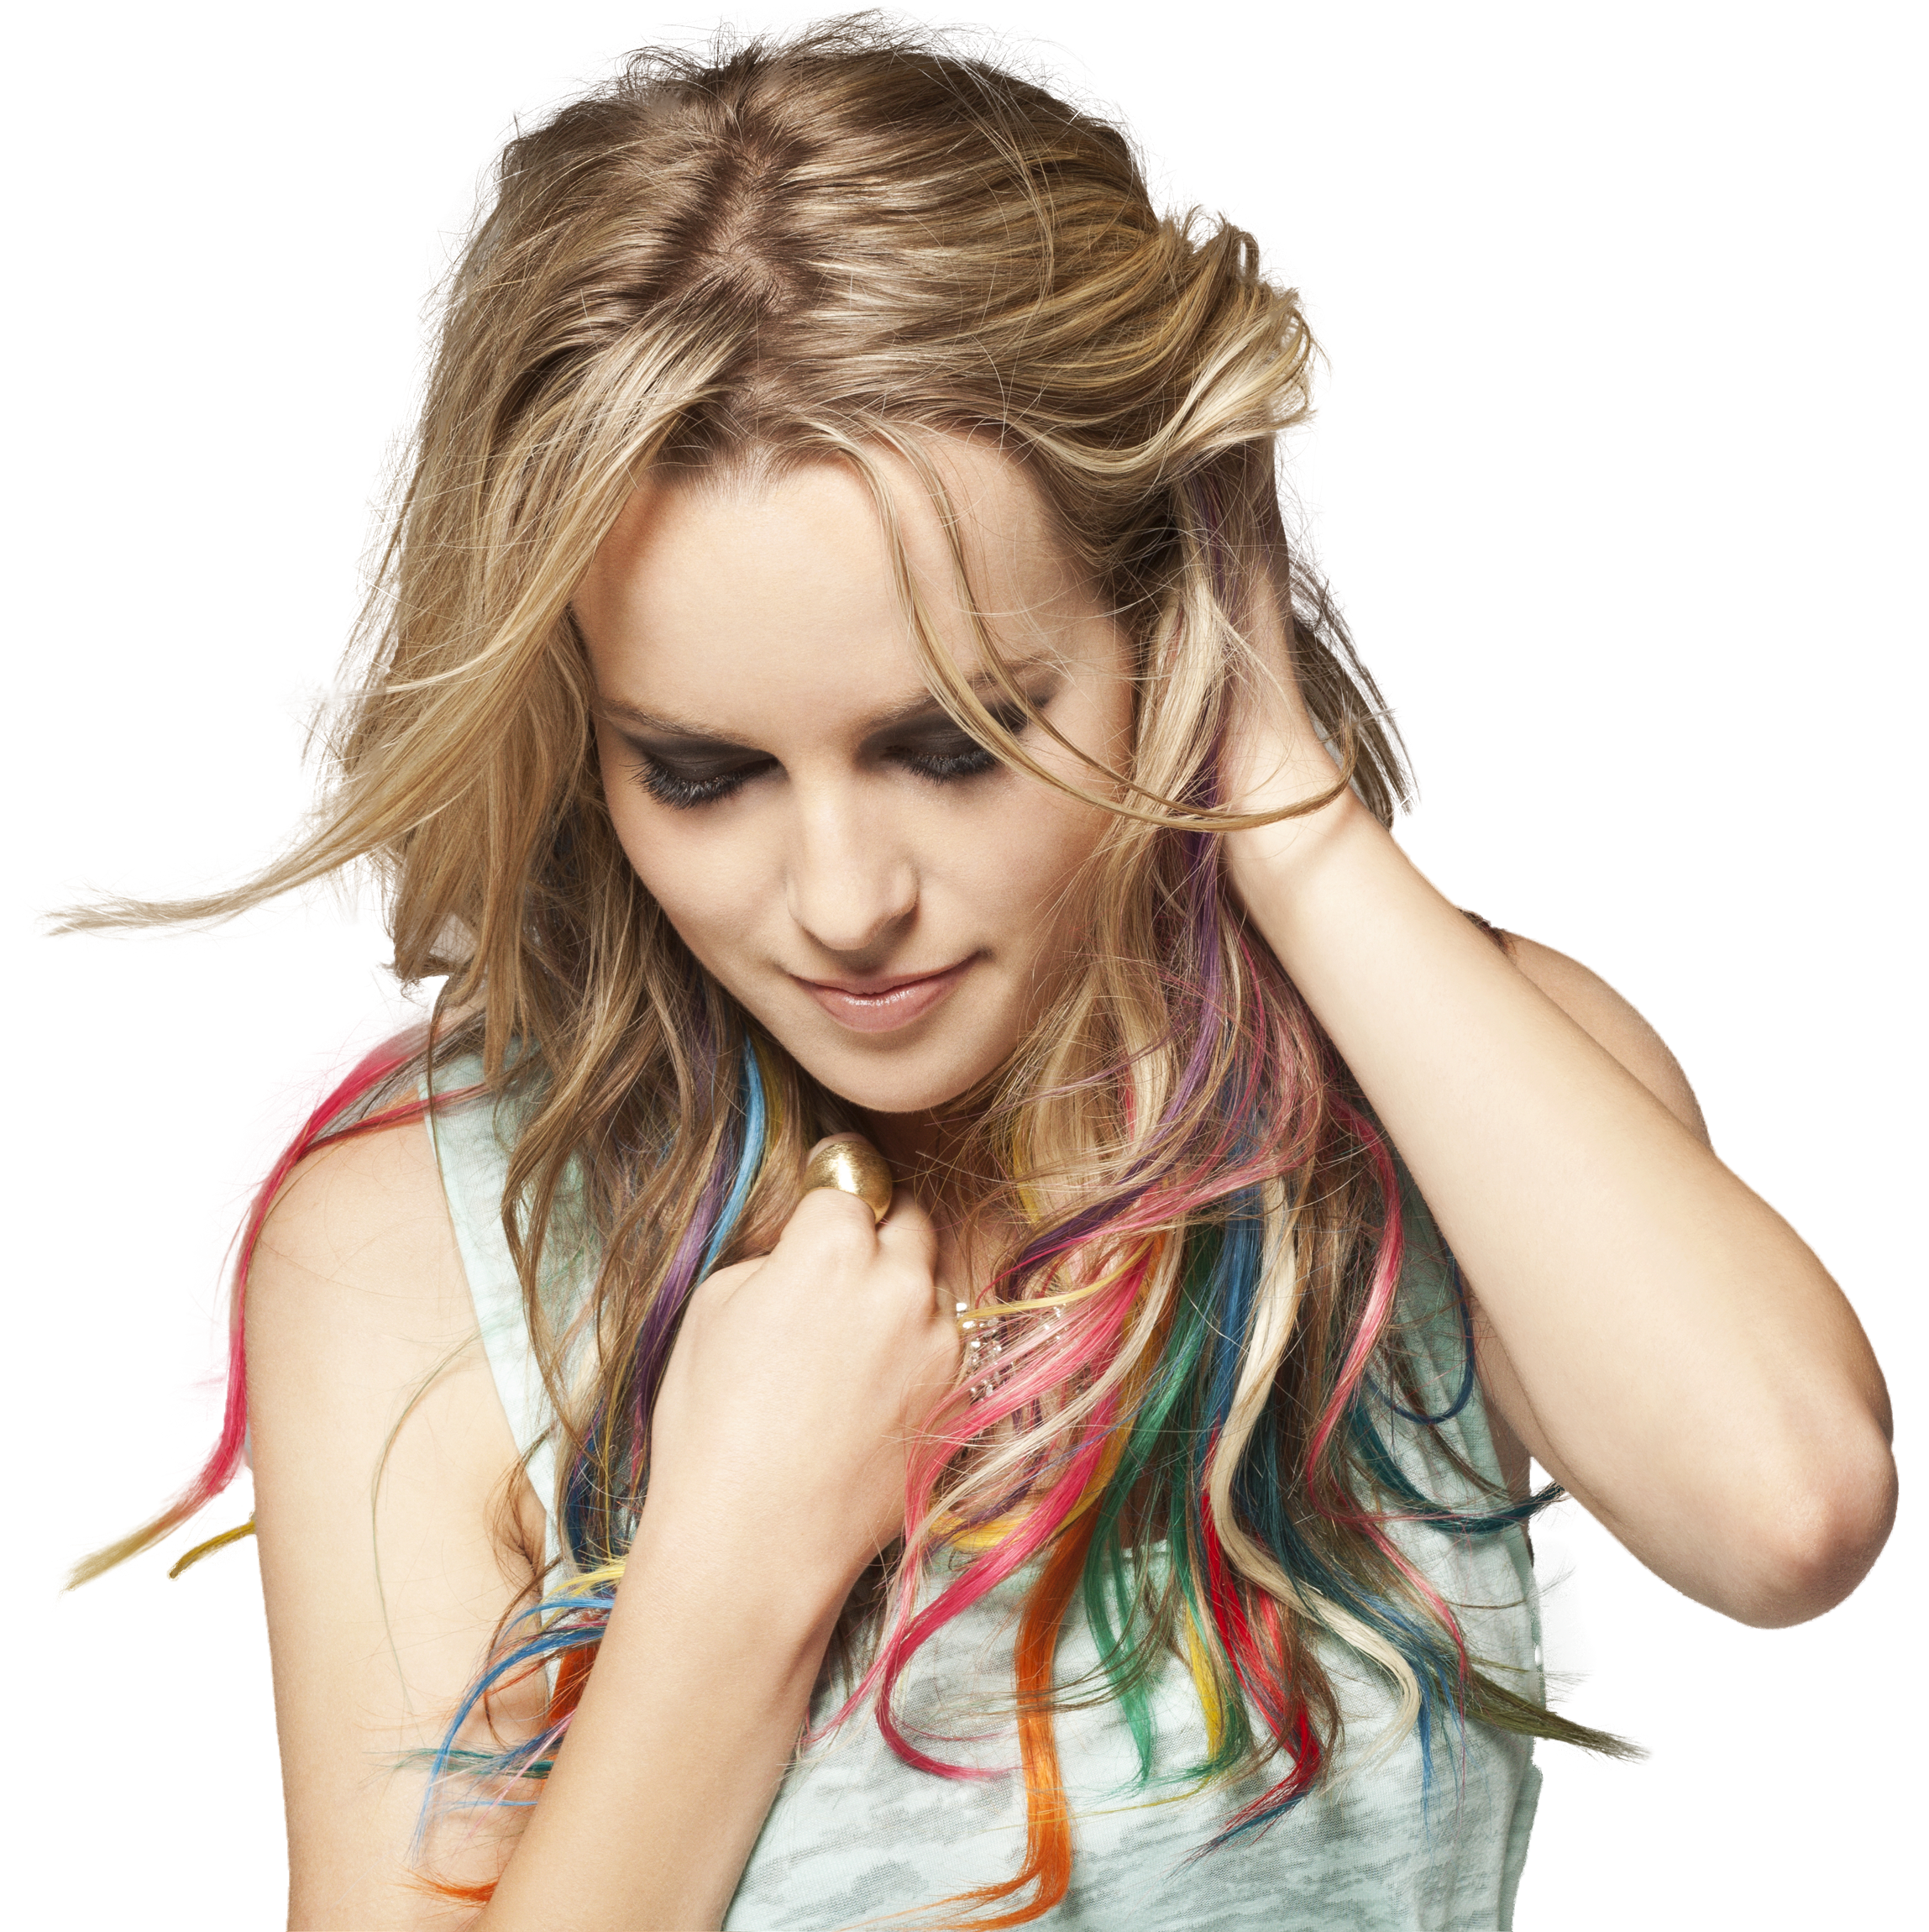 Briget mendler in panties Her Over Me Chapter 1 One Direction Fanfiction